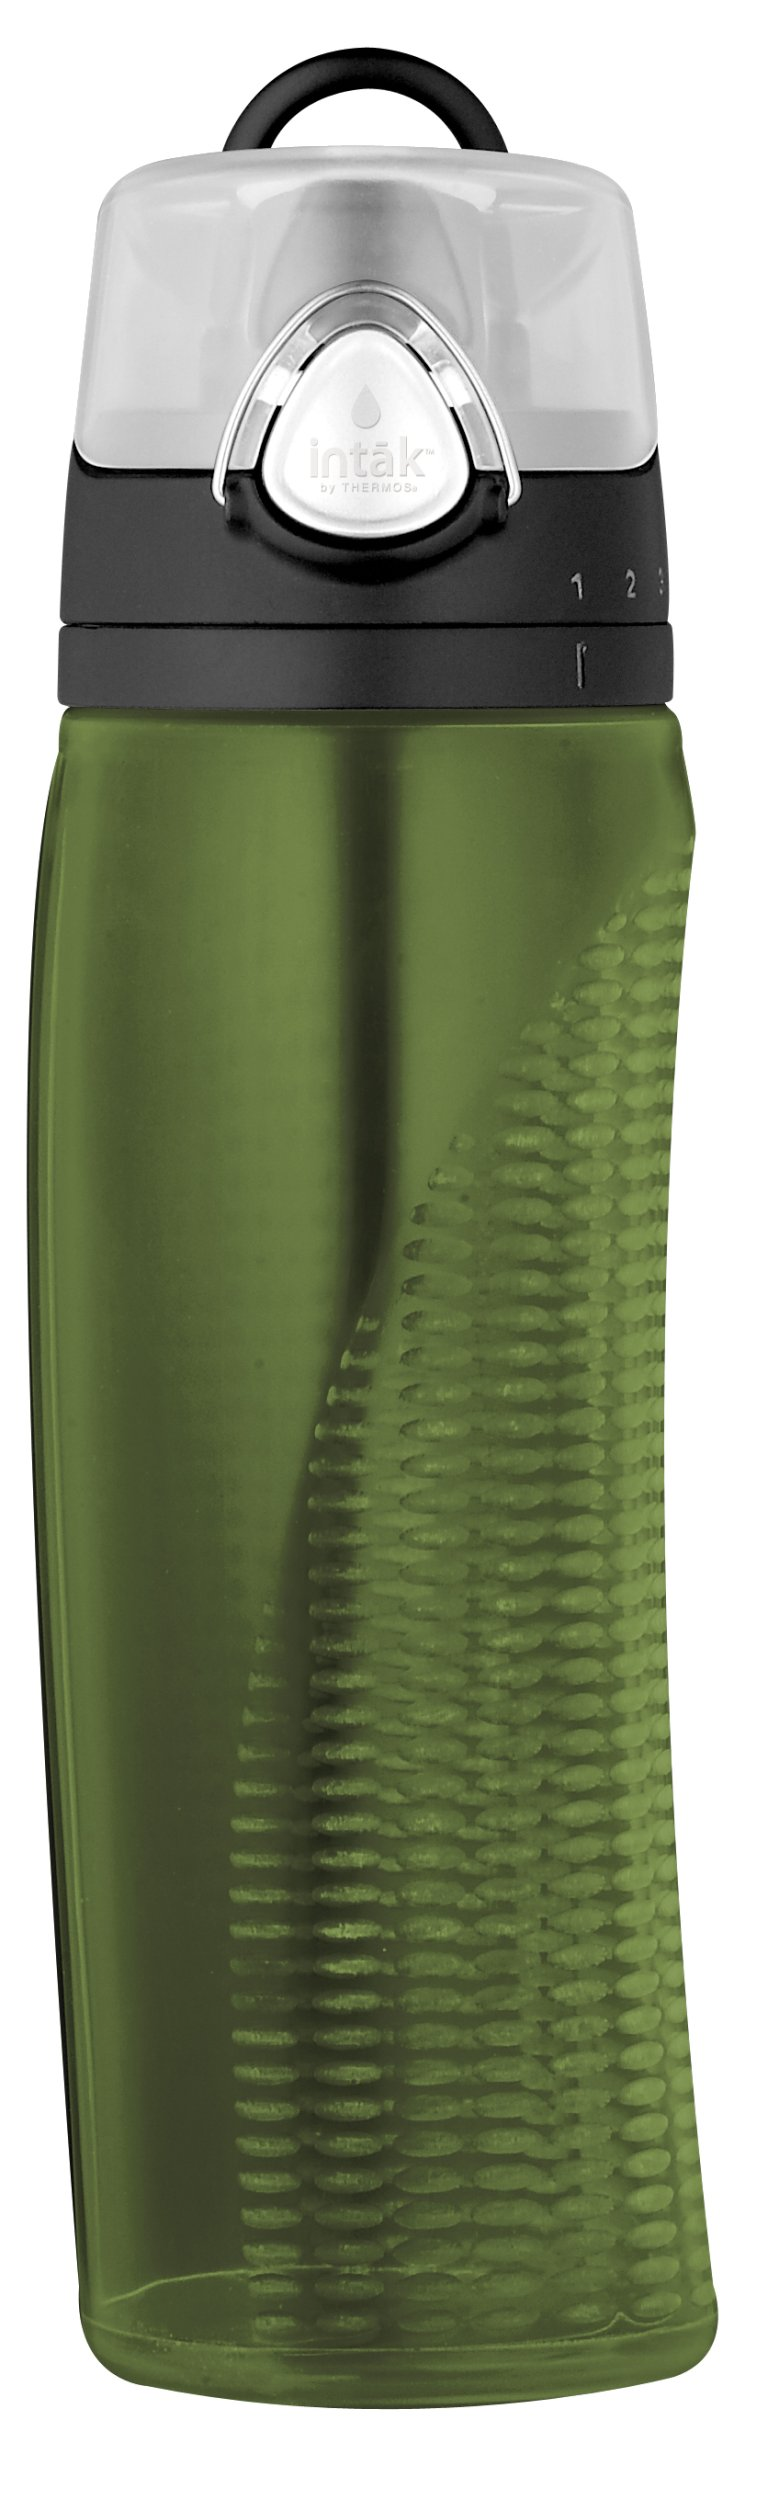 써모스 물통 Thermos Intak 24 Ounce Hydration Bottle with Meter, Green